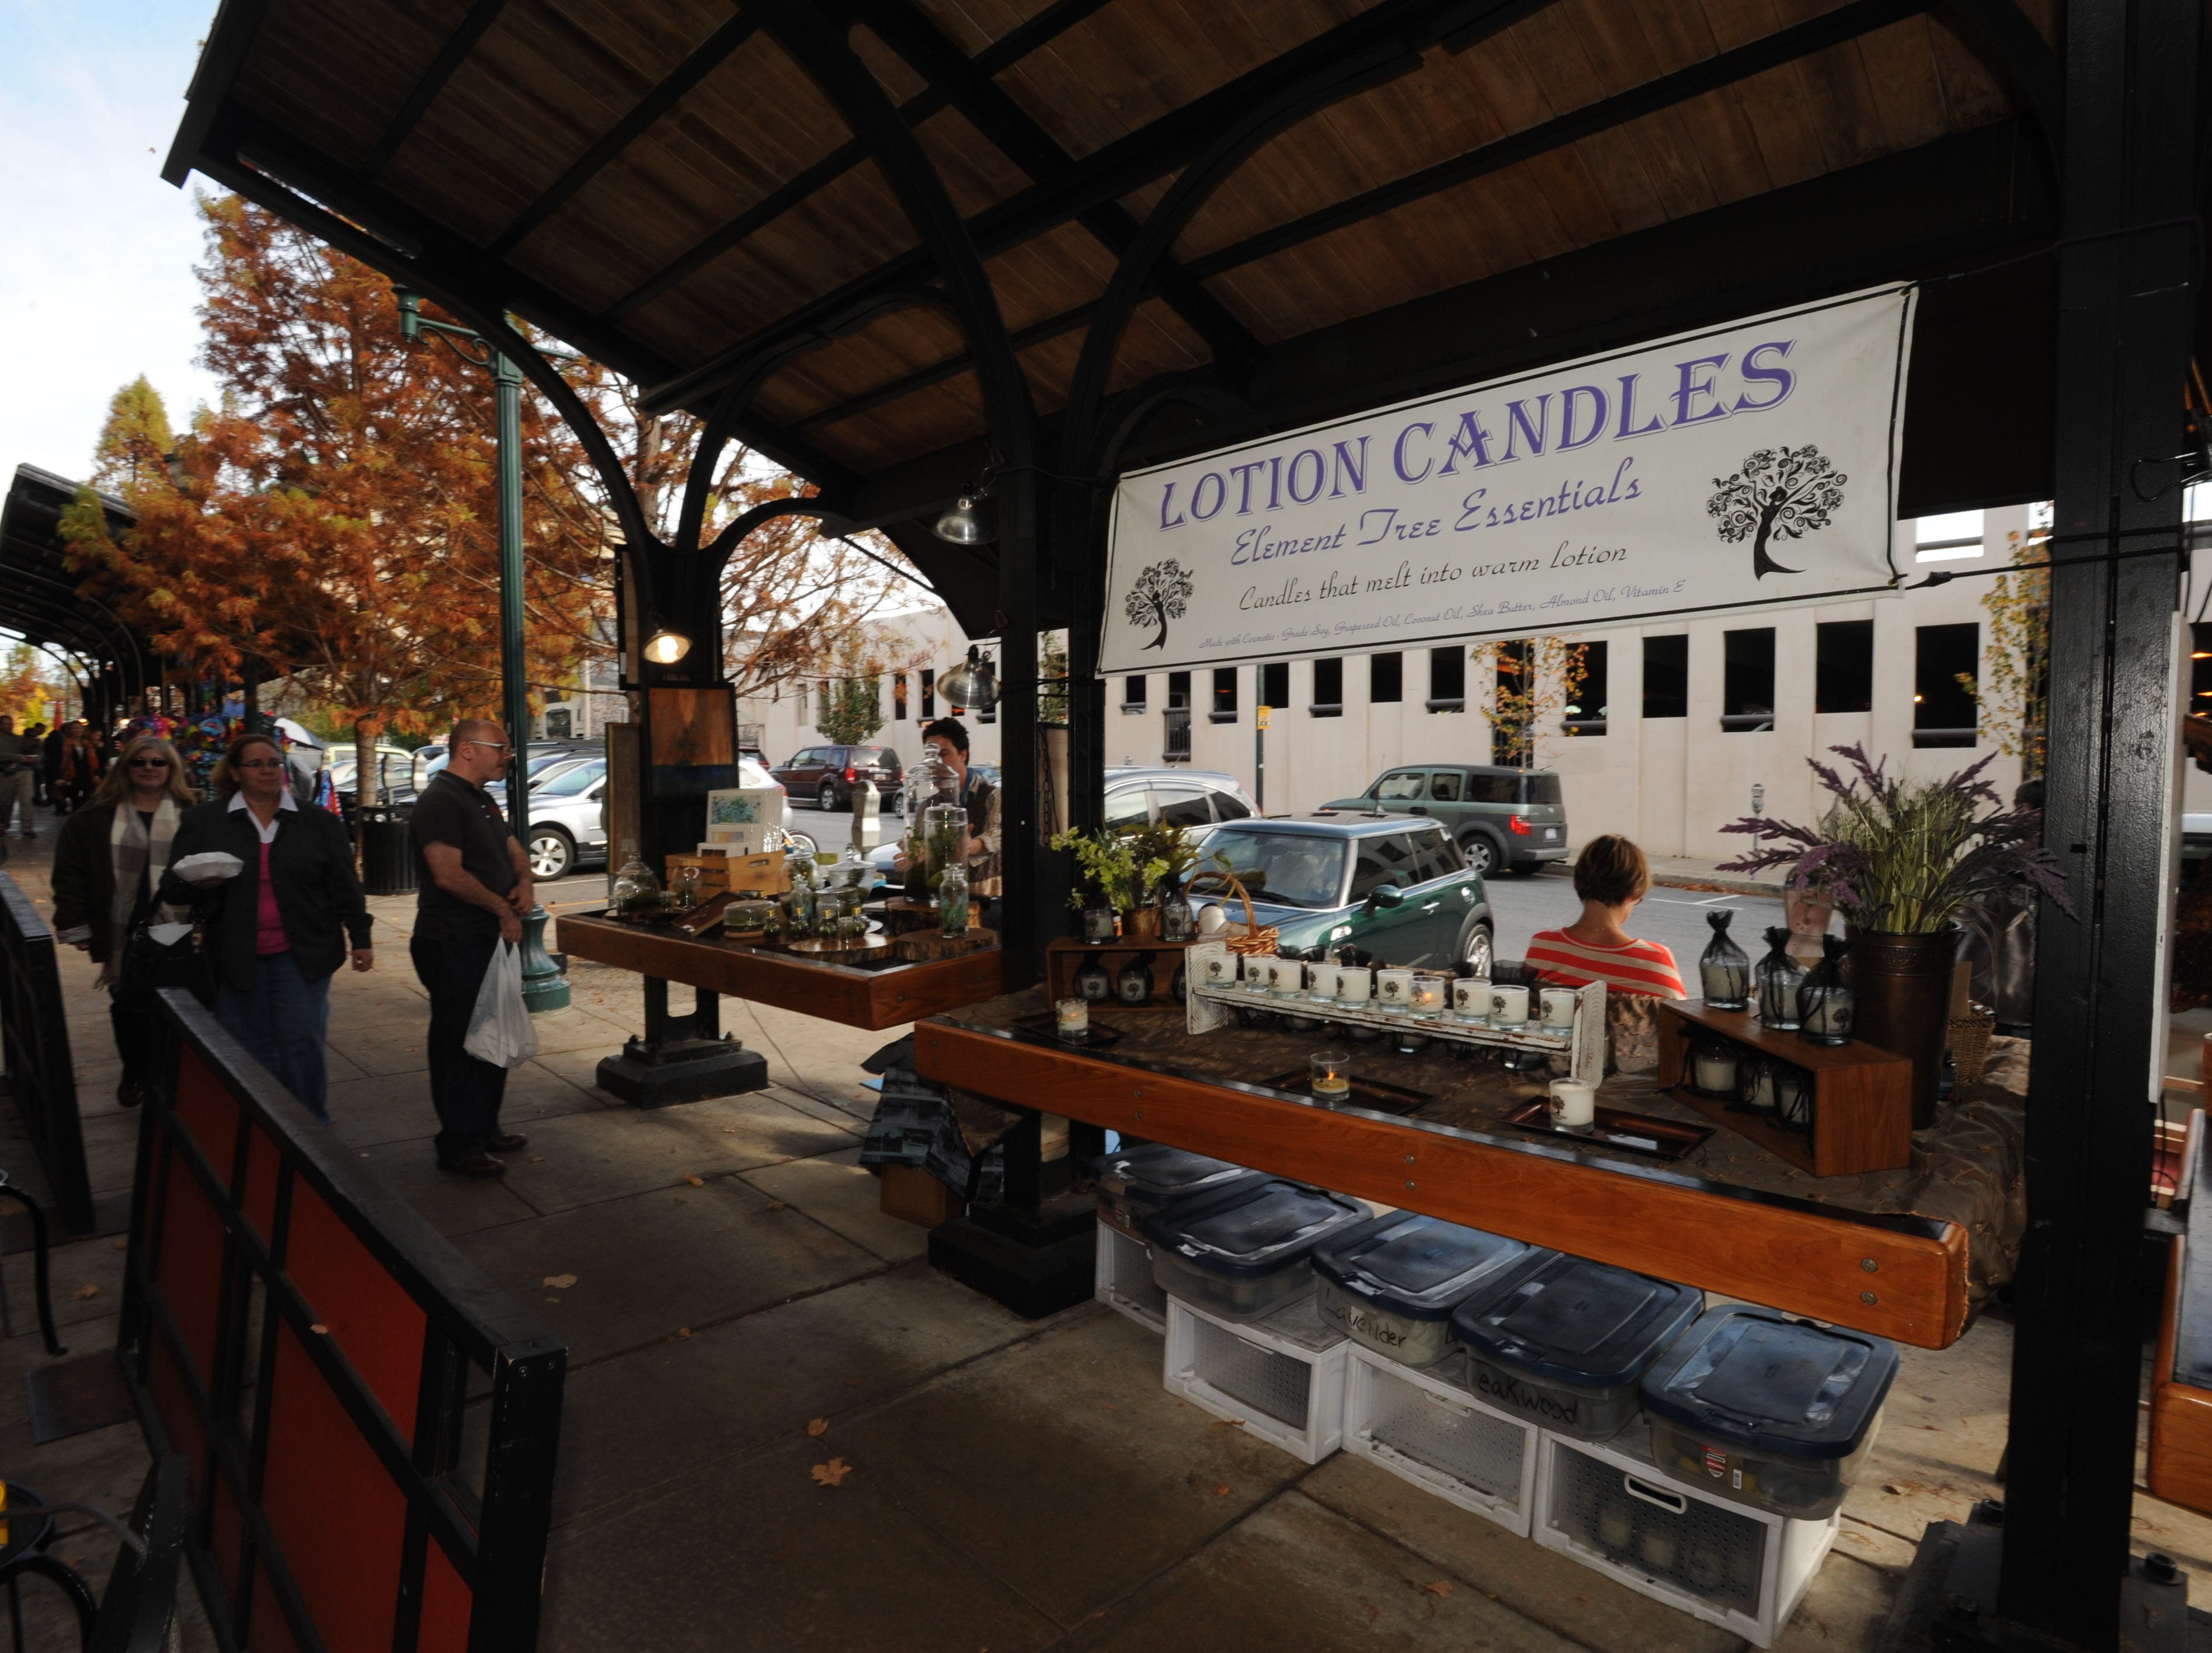 On the south end of the Grove Arcade is the Portico Market, with several stalls.